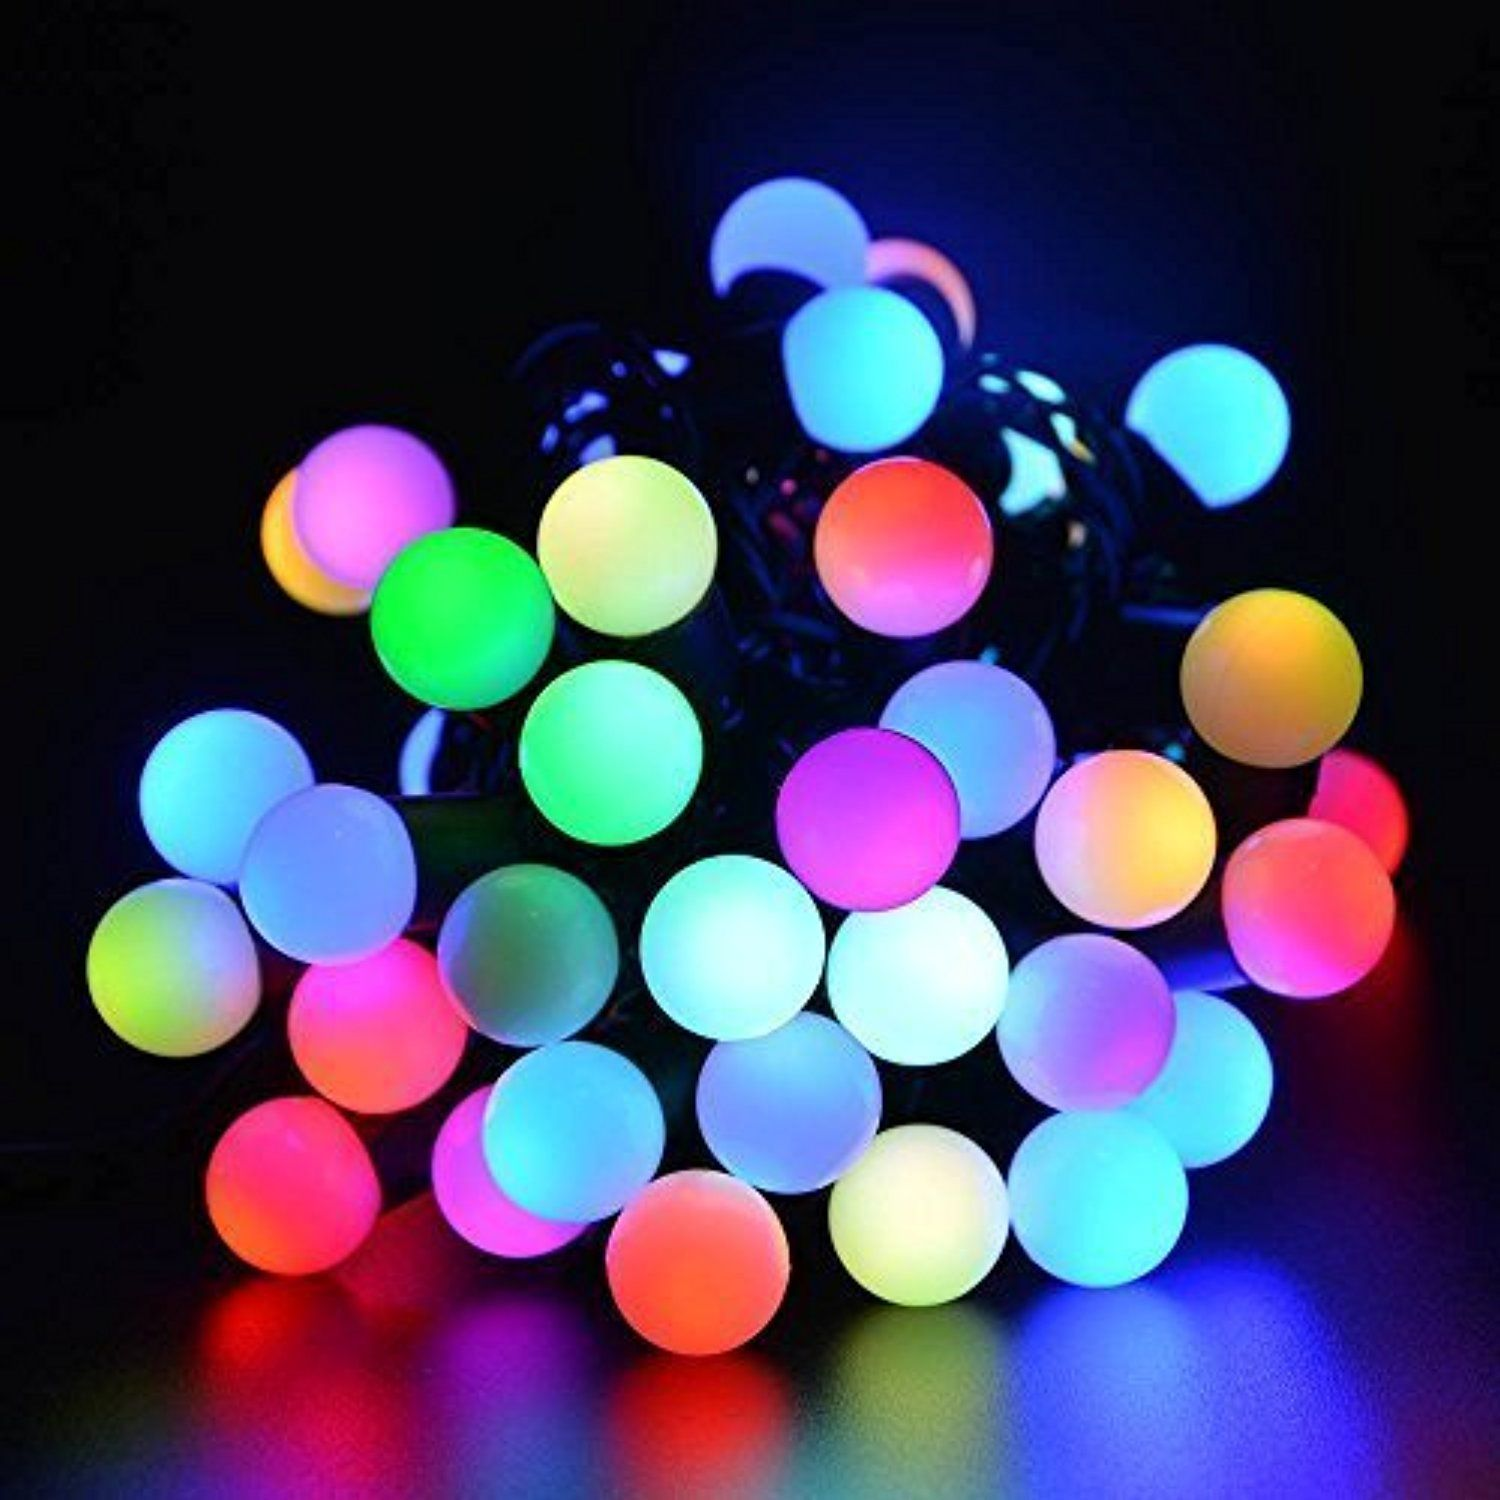 Fullbell Christmas 16ft 50 LED RGB Ball String Lights, Color Changing  Novelty Fairy Globe String